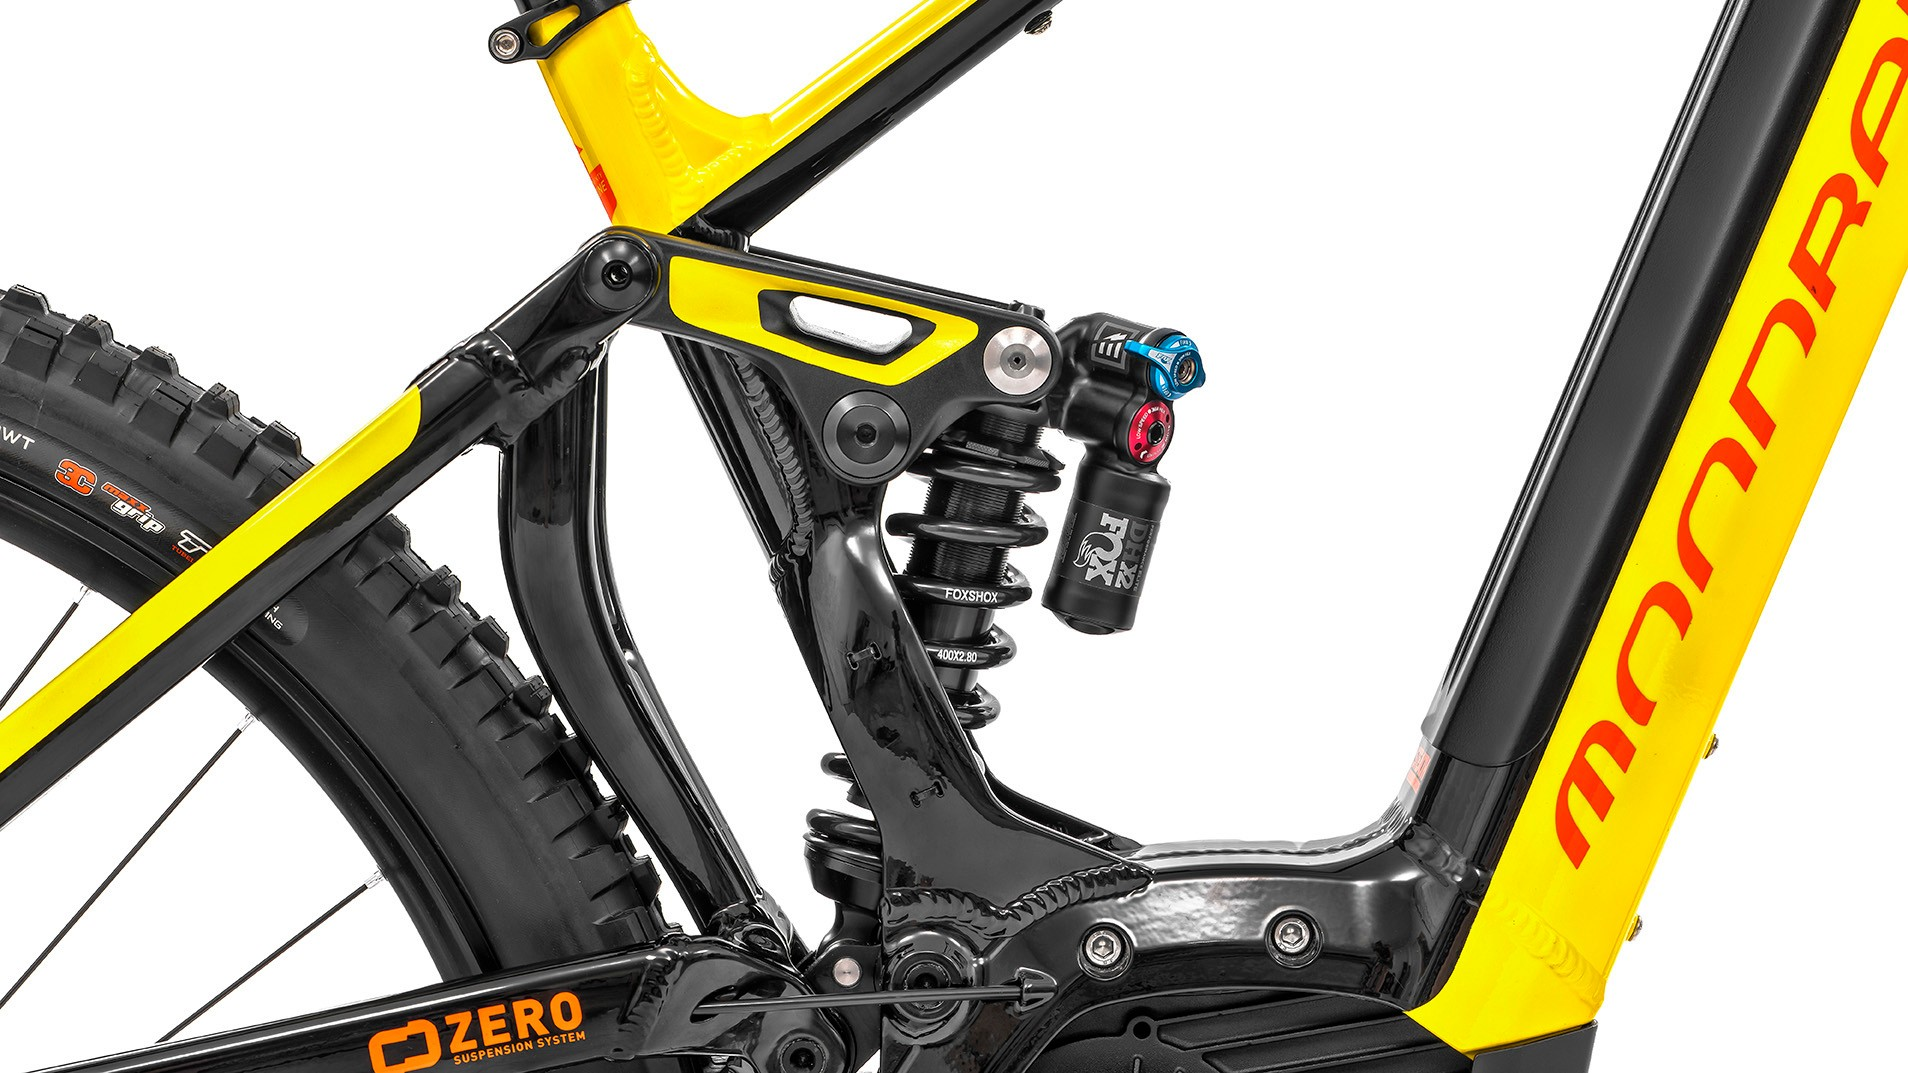 Zero Suspension: a dual link design where the shock floats between the two suspension links and is compressed from both ends